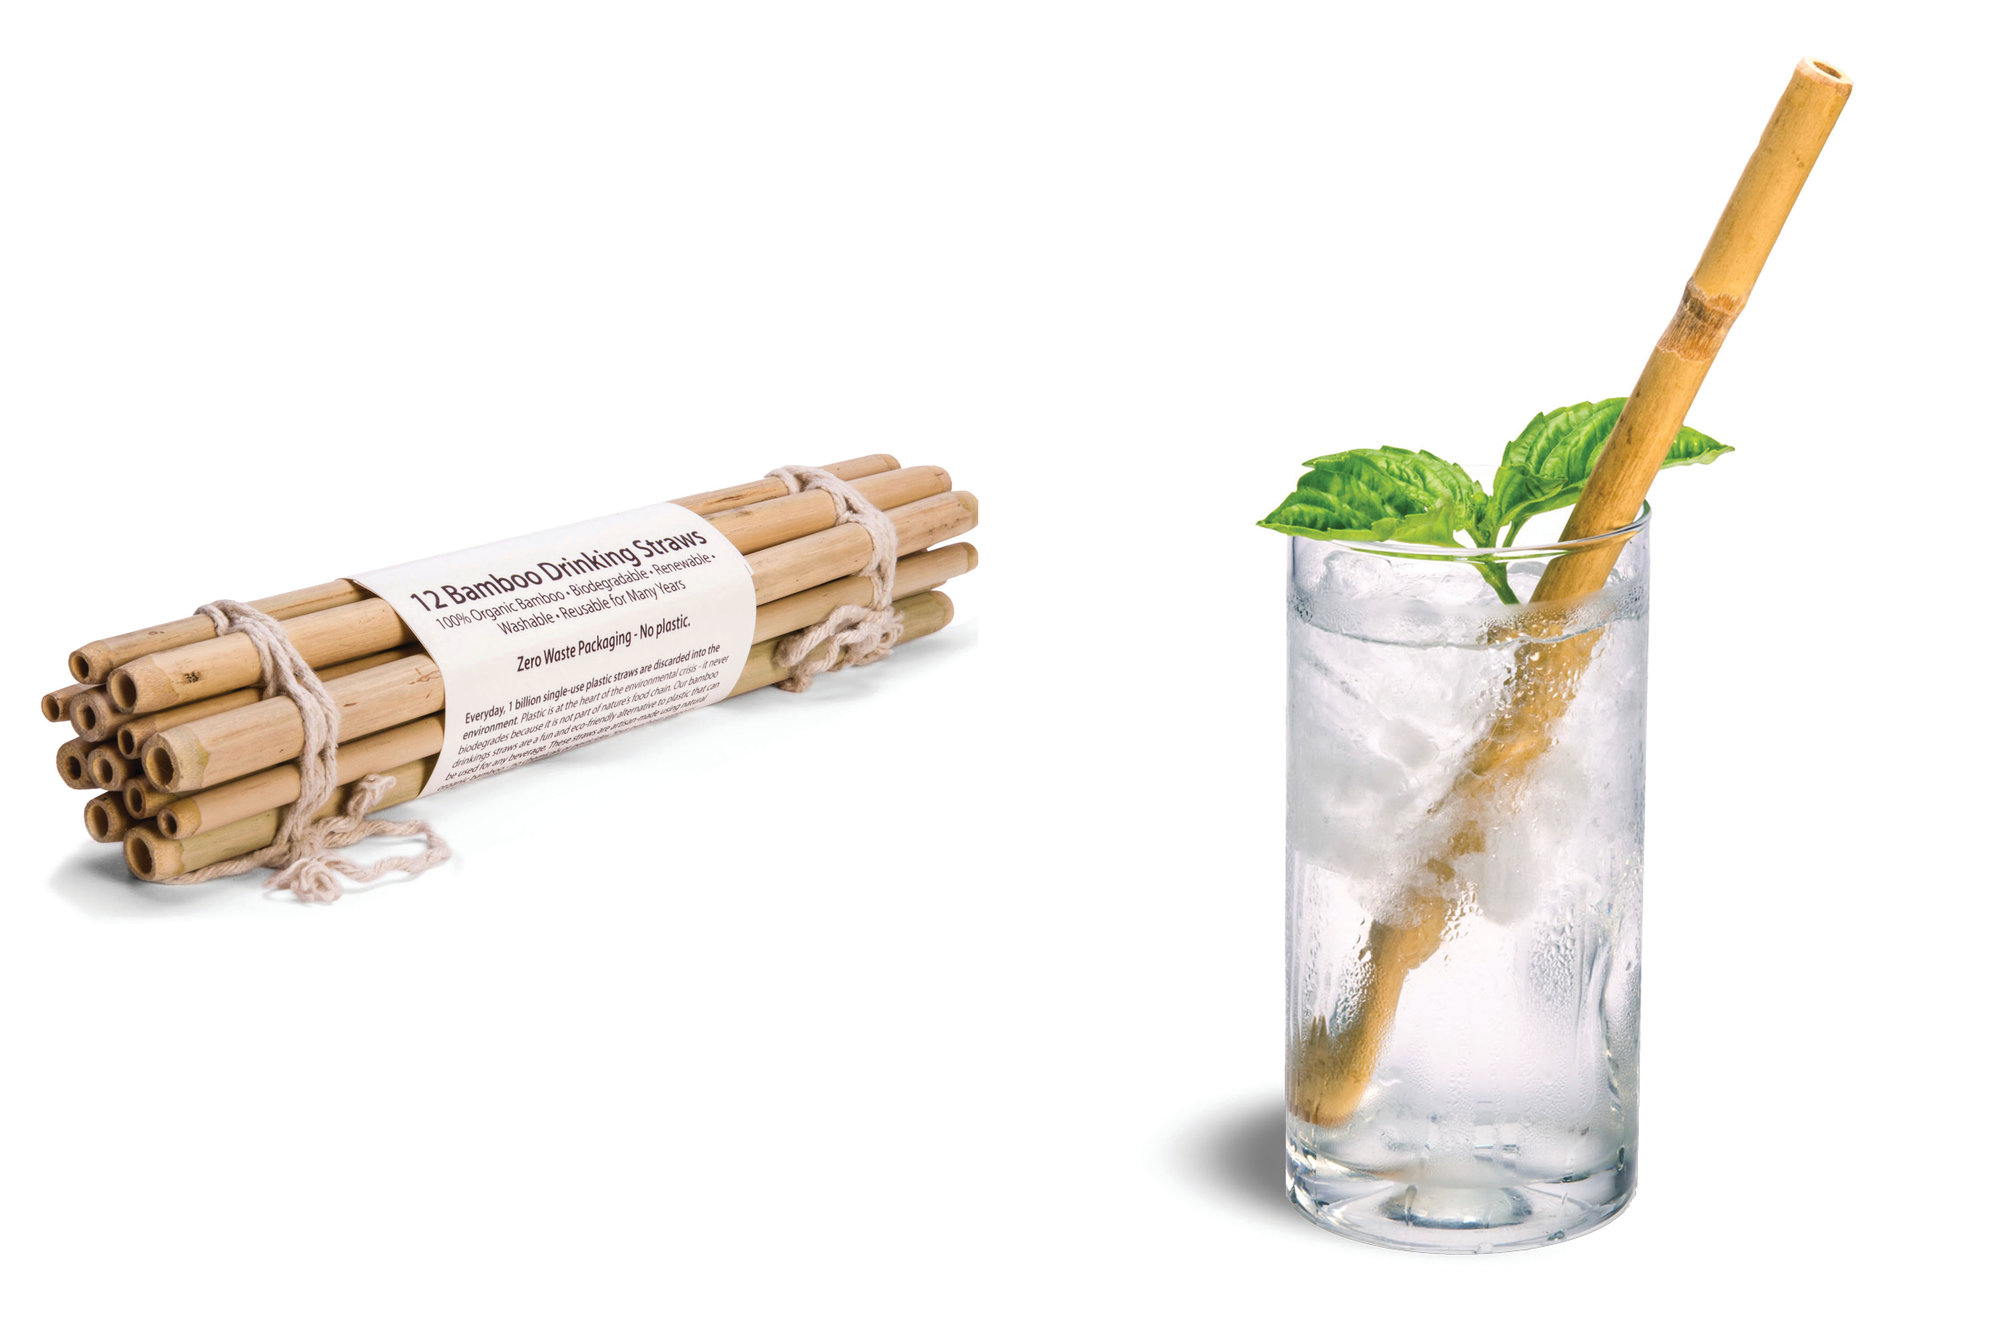 Brush with Bamboo via APBamboo straws are grown organically and artisan-made in northeast India.